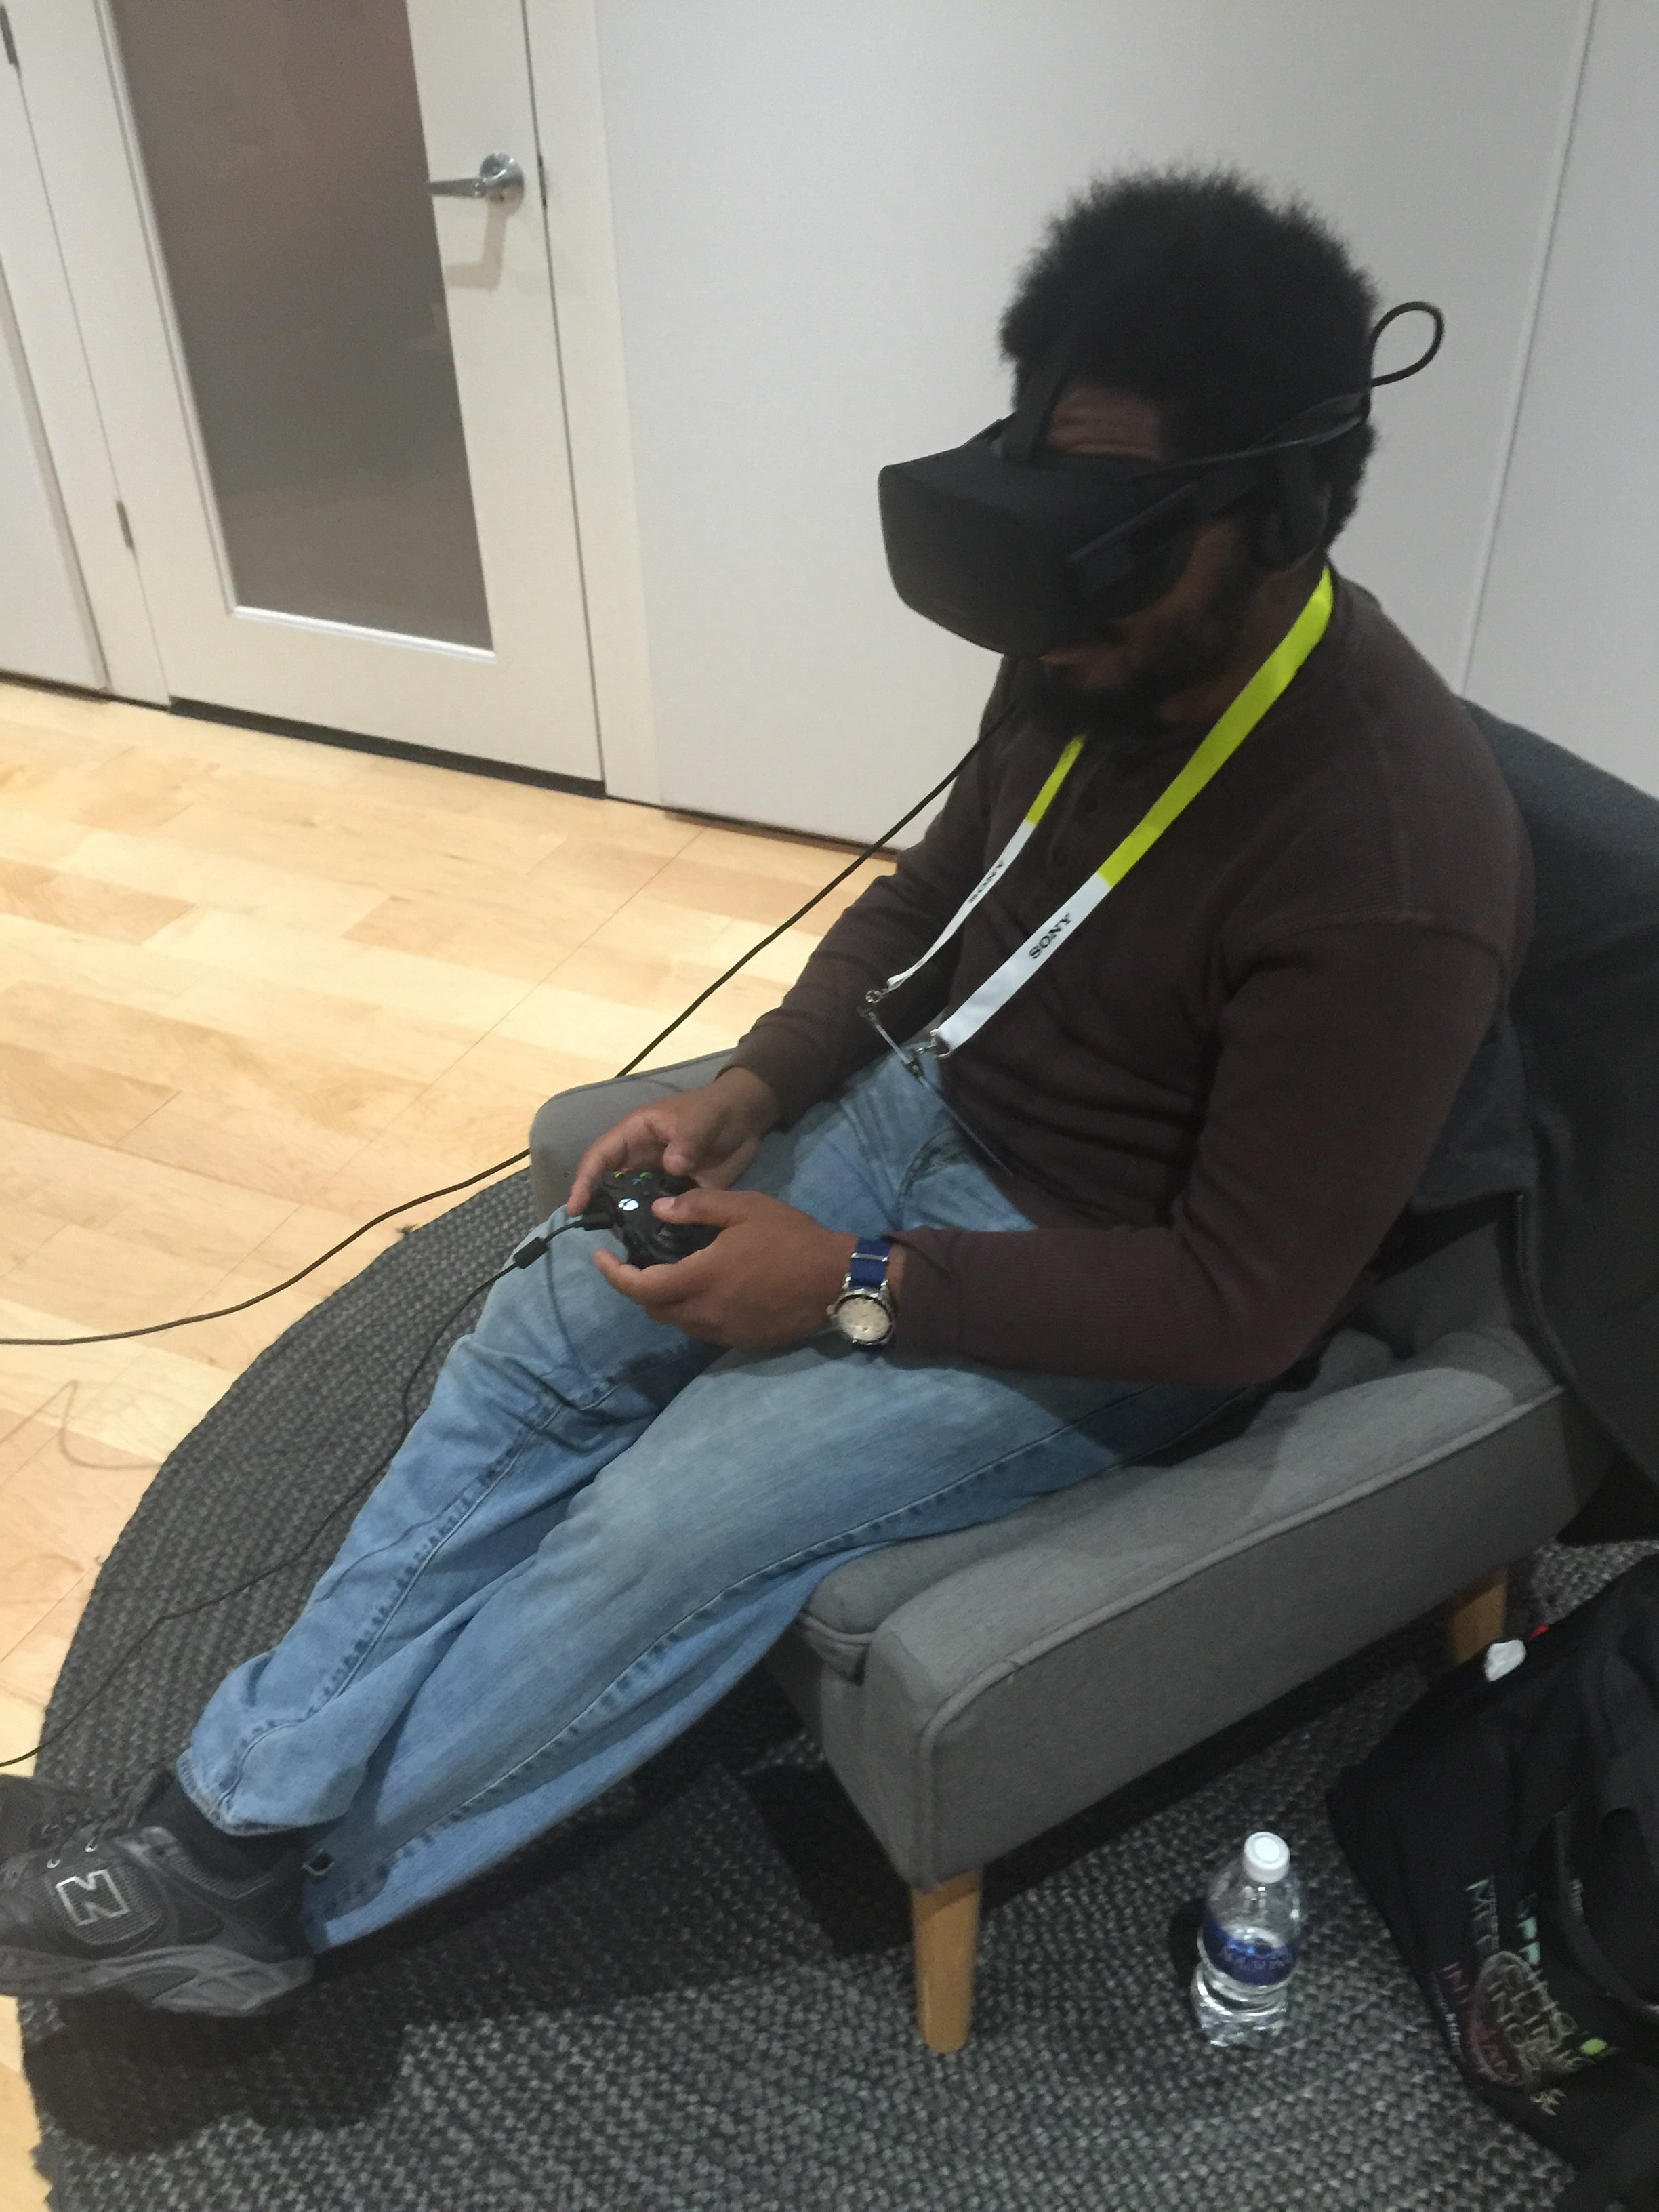 Believe it or not, I'm flying through space in the game Eve Valkyrie for the Oculus Rift